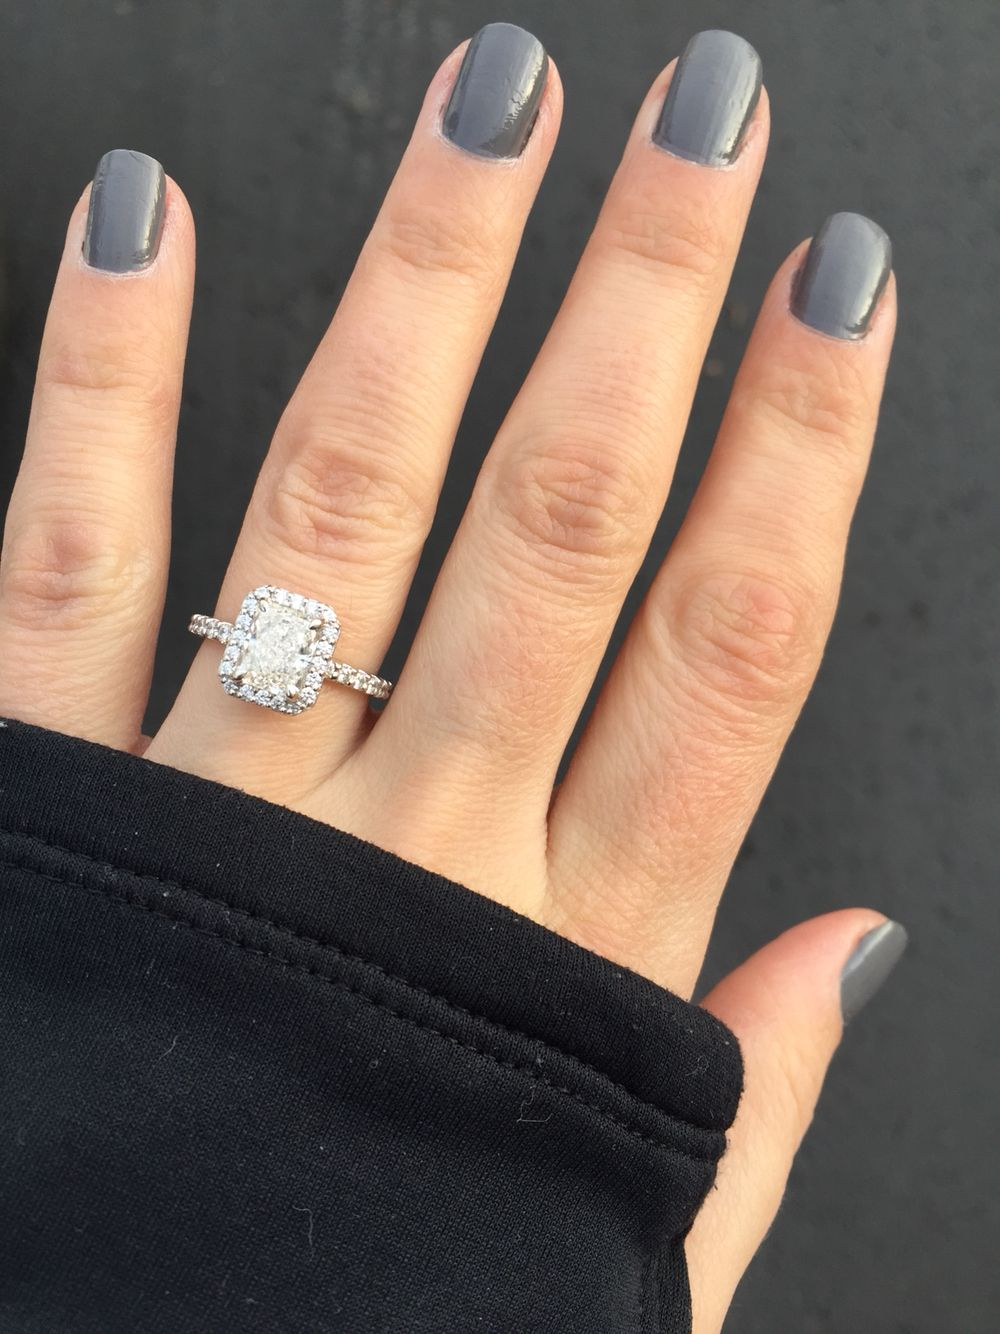 Nyc 12 11 15 Where The Love Of My Life Proposed ️